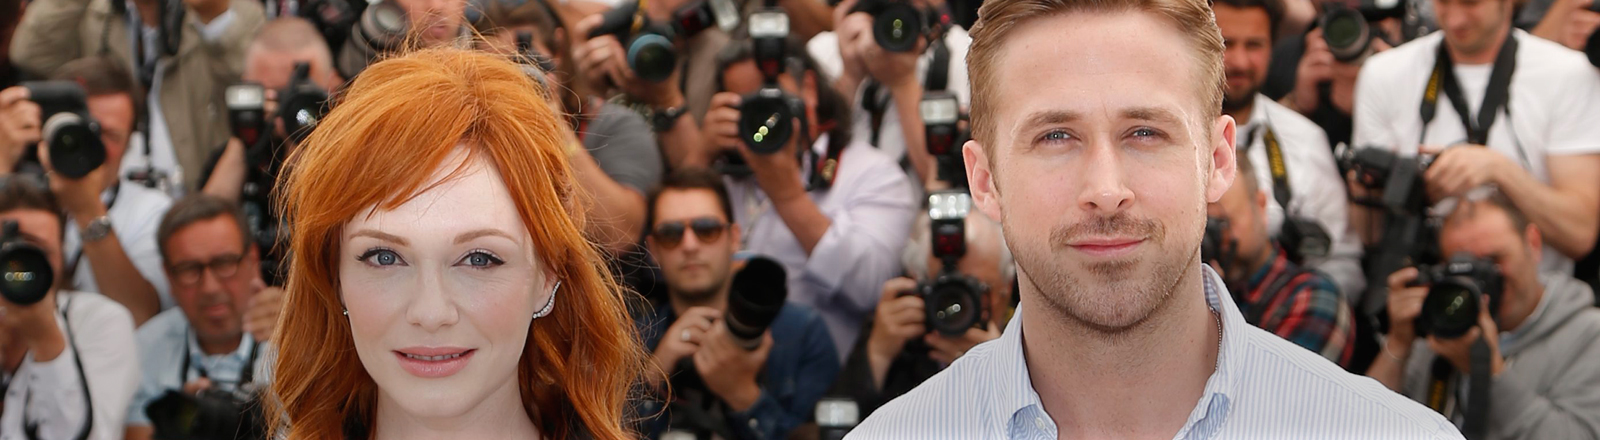 "Ryan Gosling und Christina Hendricks beim Photocall zum Film ""Lost River"", Goslings Regiedebüt, in Cannes 2014."